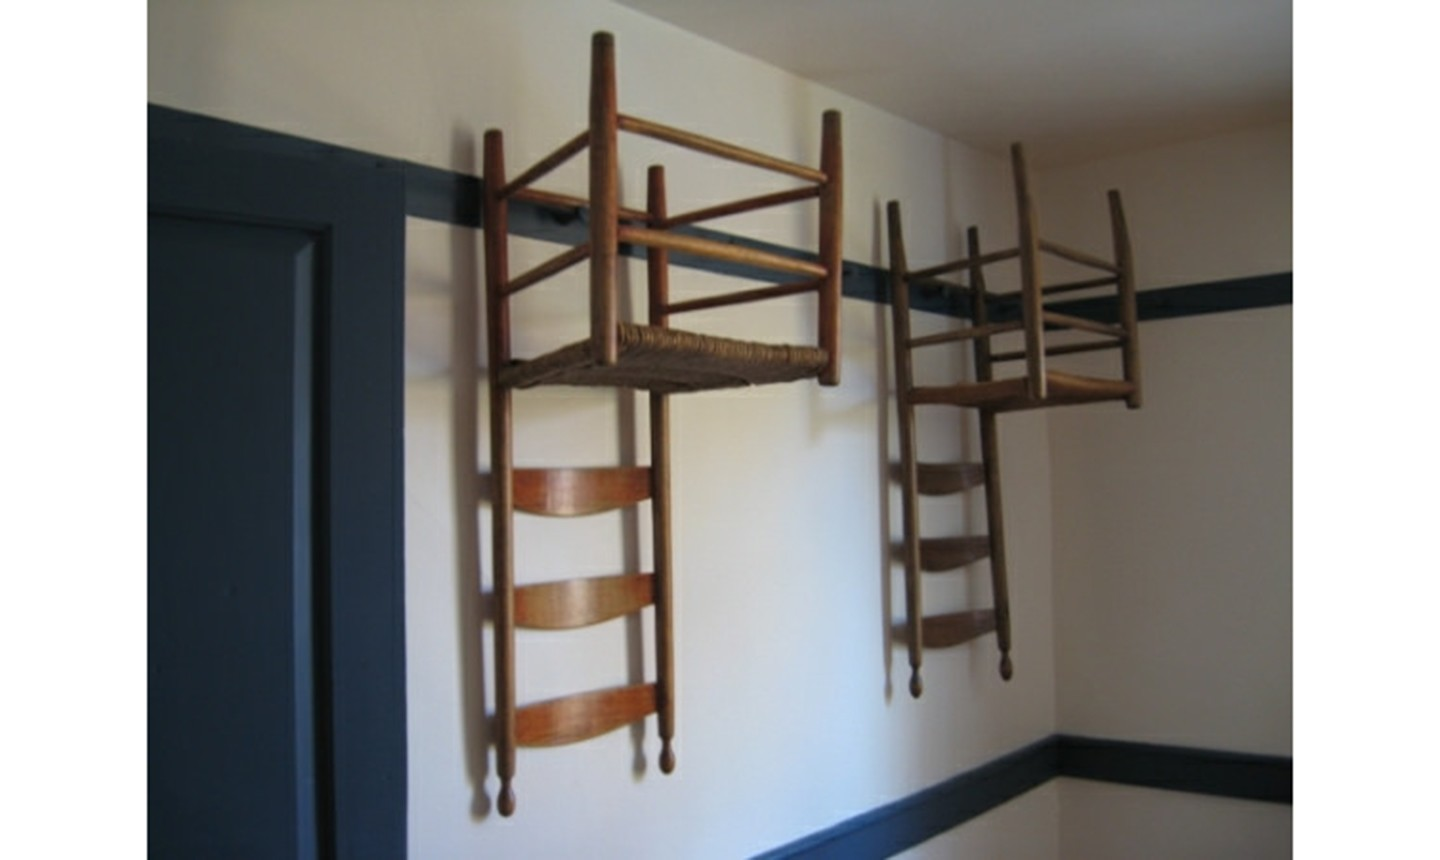 shaker chairs on a wall